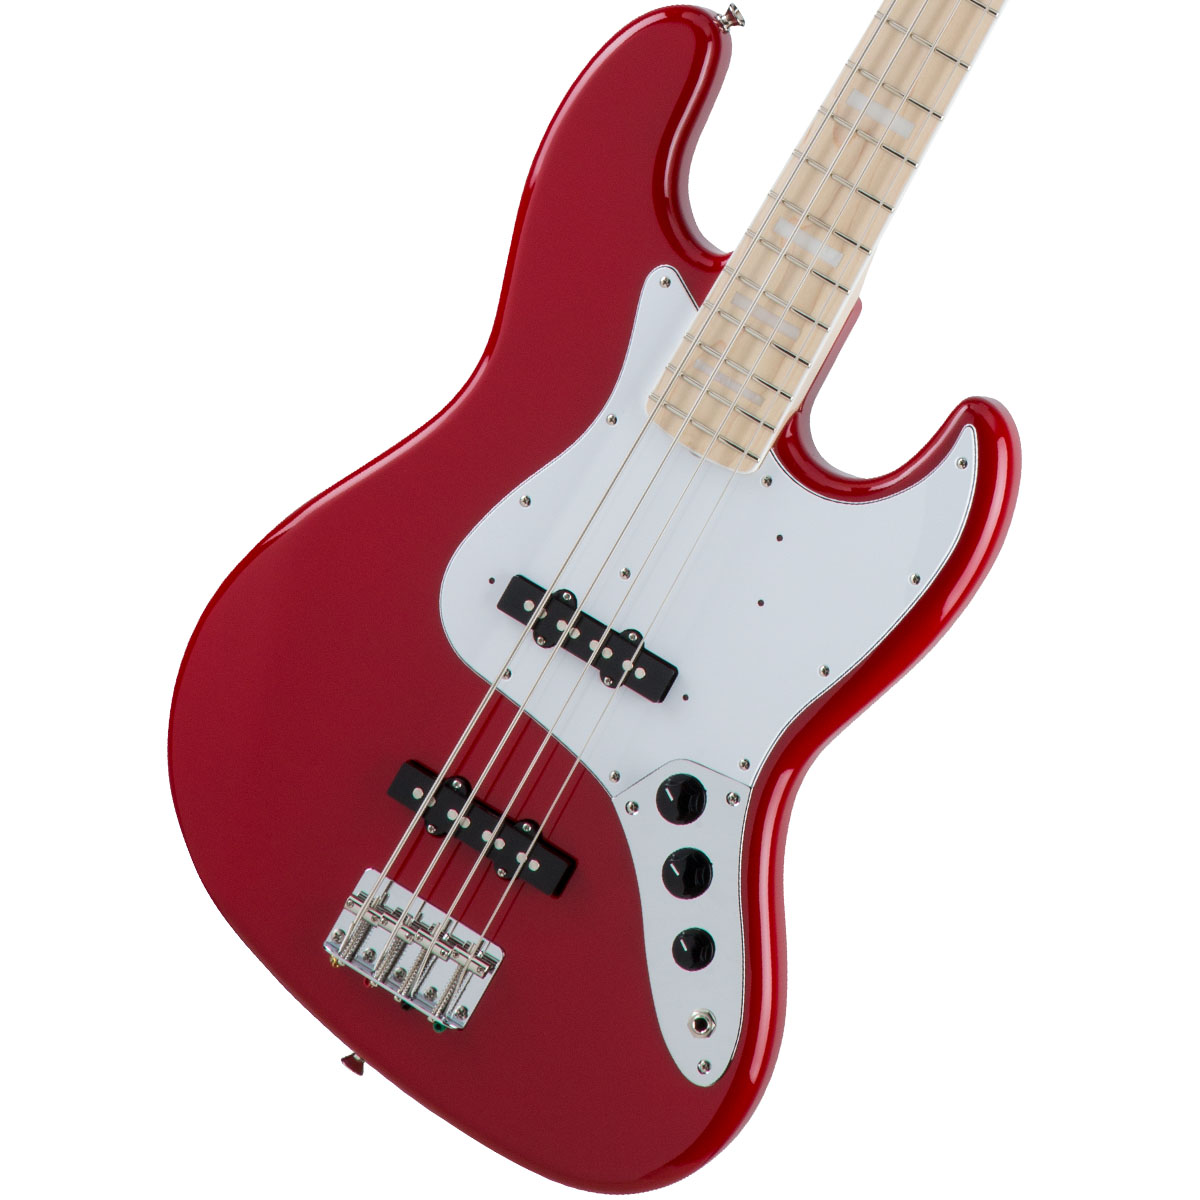 ずっと気になってた Fender 70s Fender/ Made in Japan Traditional 70s Torino Jazz Bass Maple Fingerboard Torino Red【池袋店】, ギフトと雑貨のお店 デコプリティ:2387d26e --- zemaite.lt